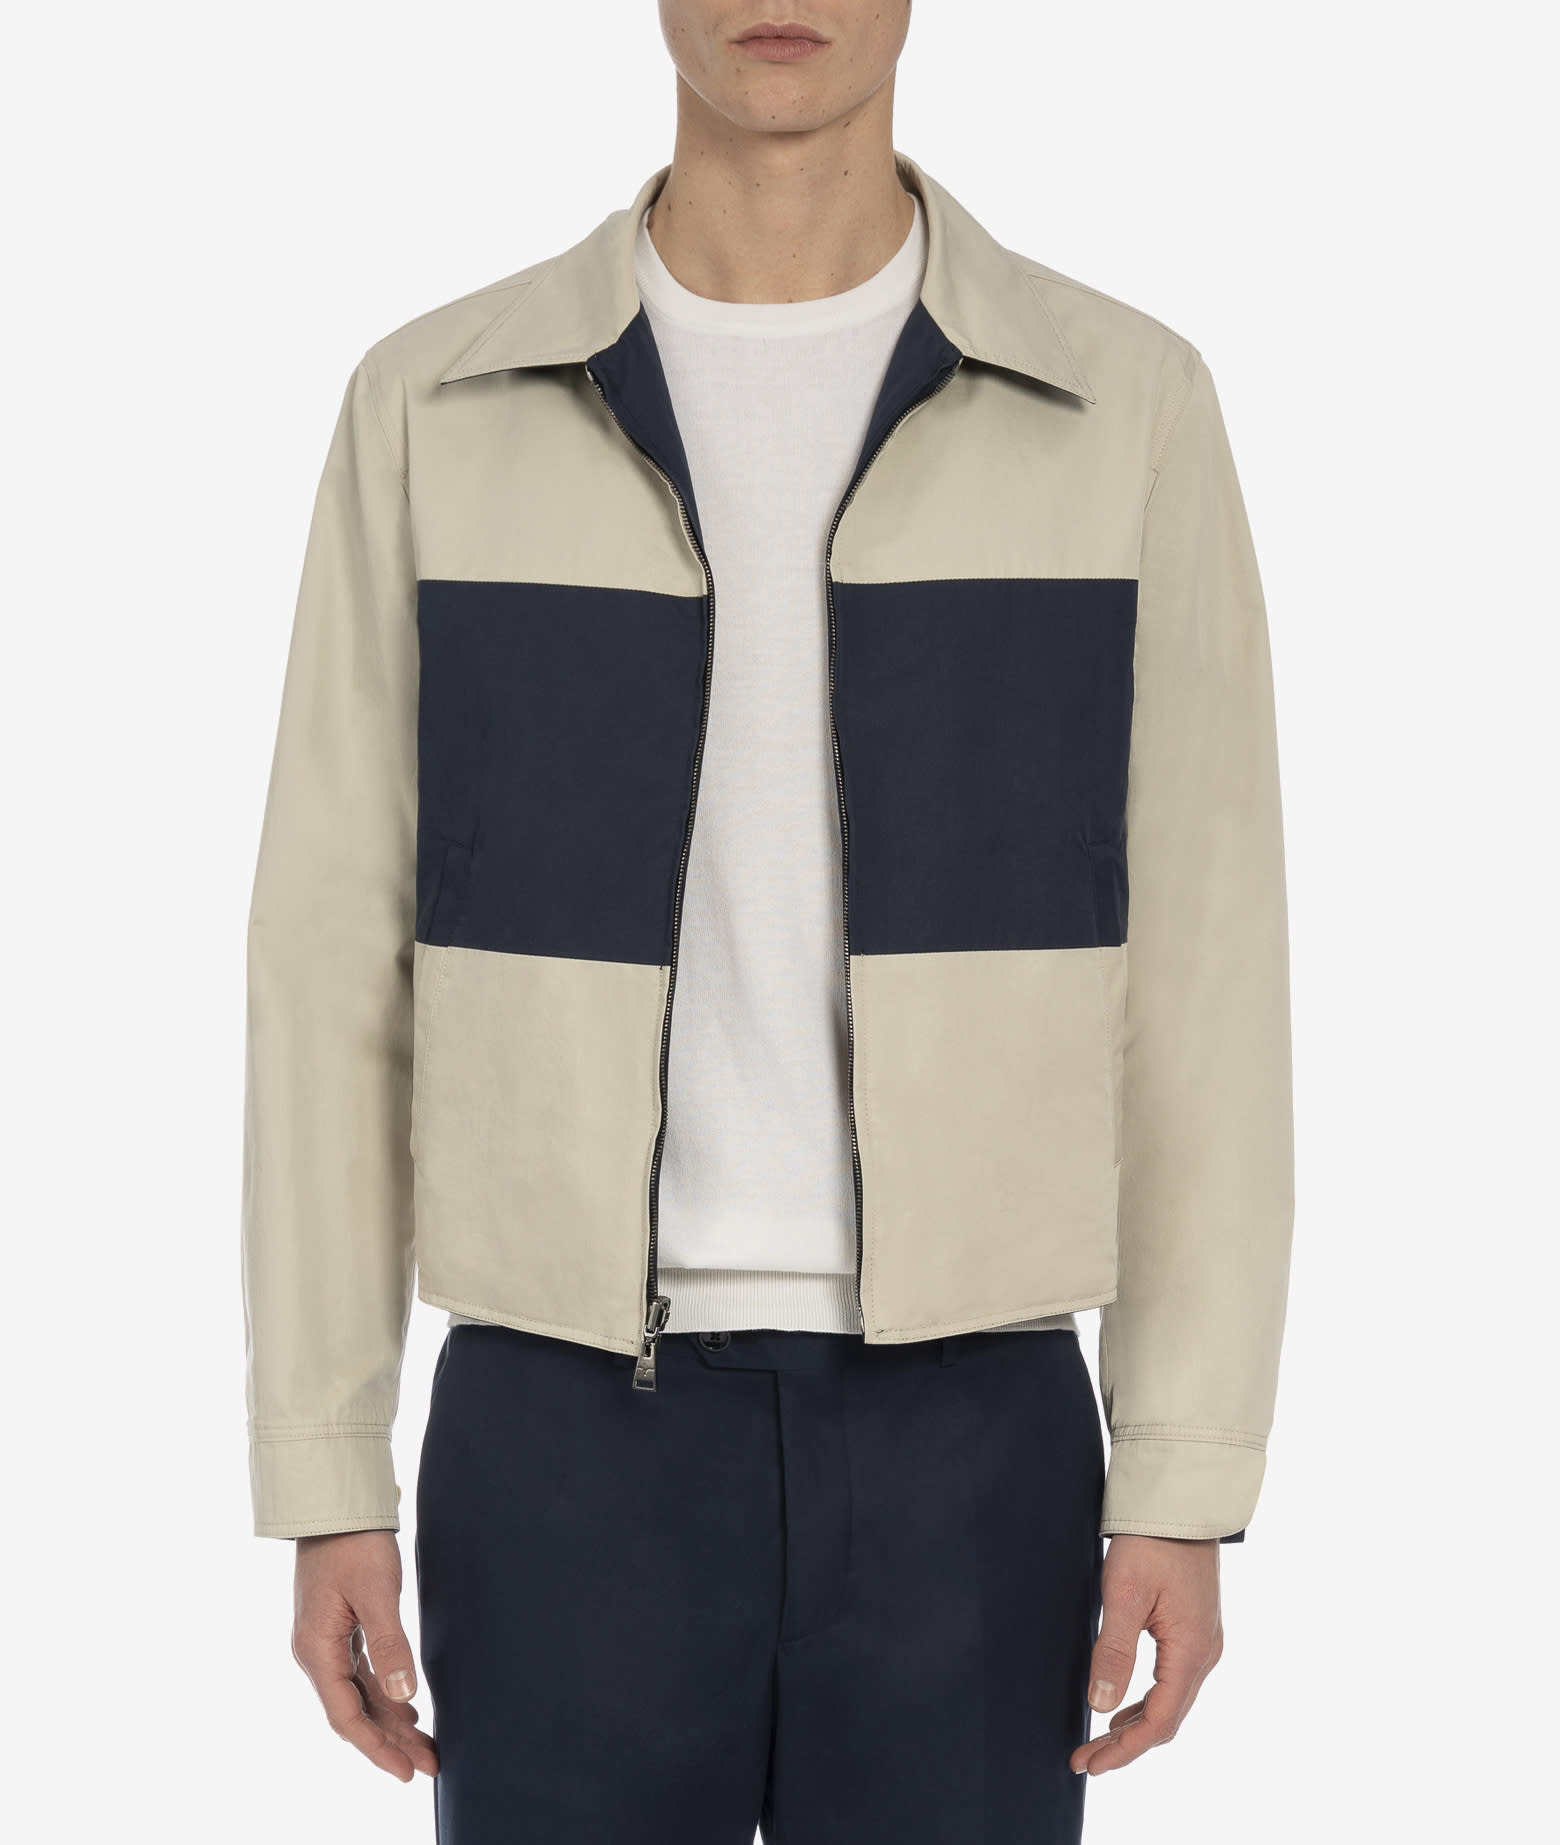 america S Cup Jacket